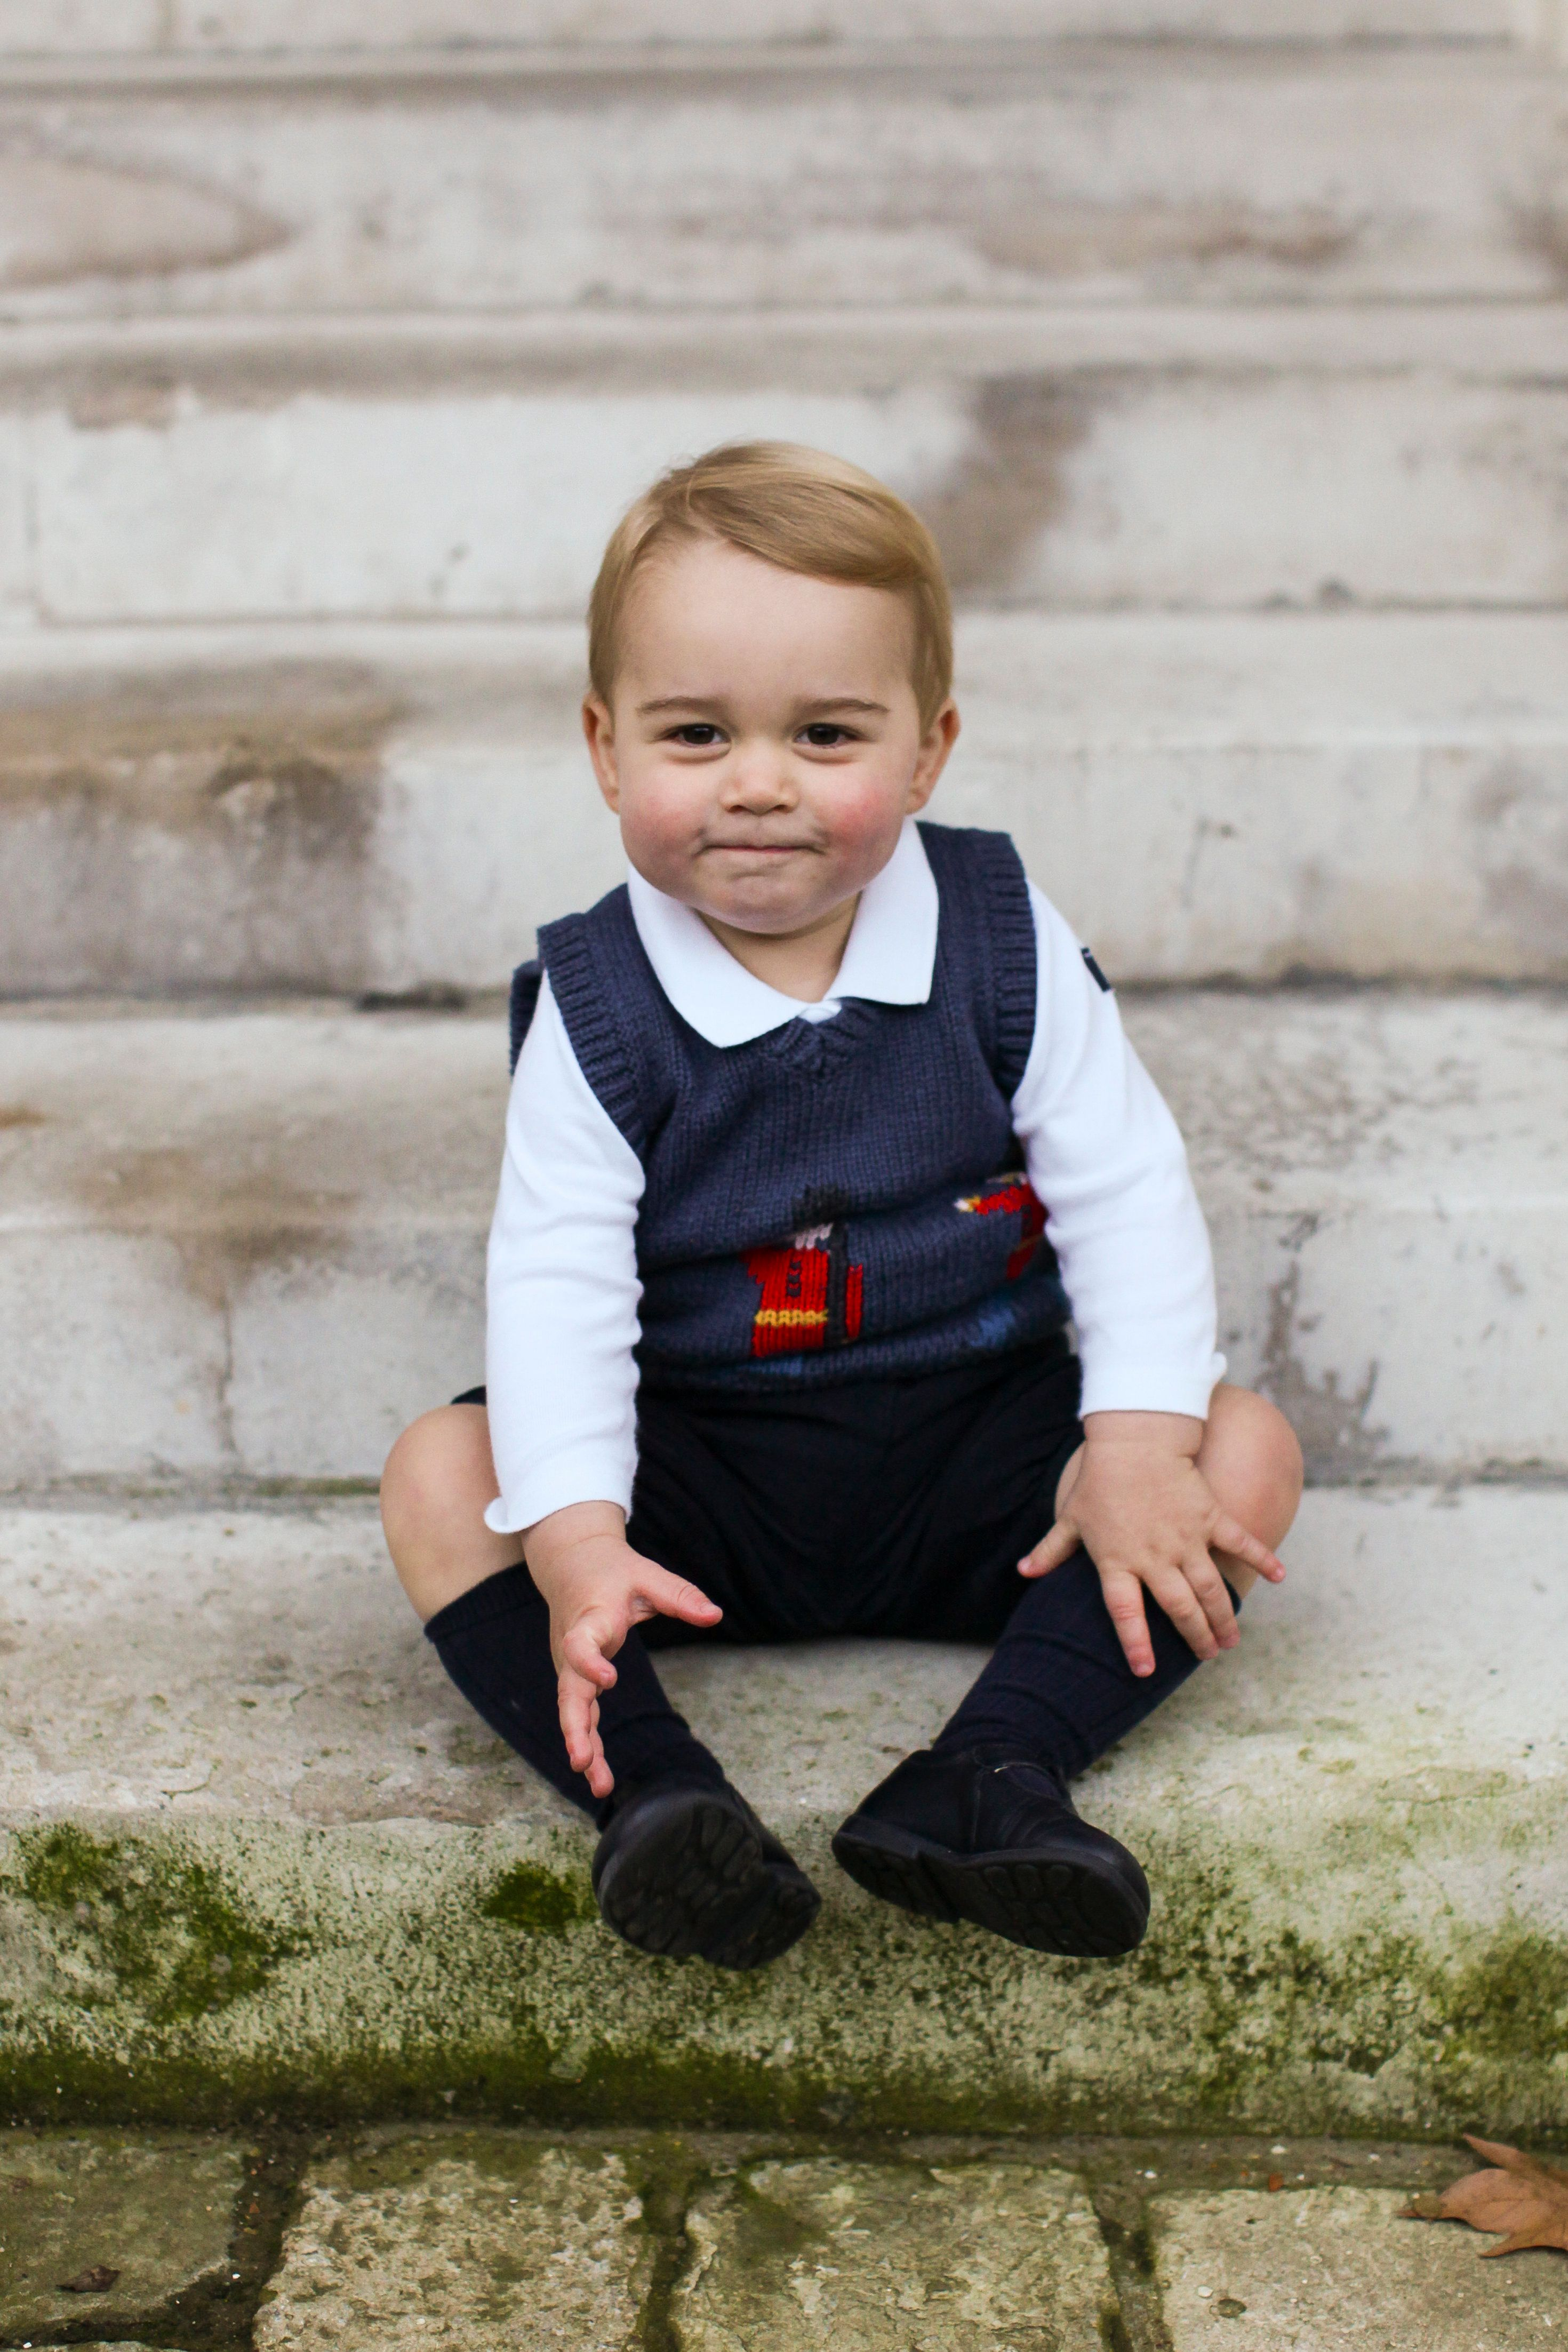 Prince George in an official Christmas portrait, taken at Kensington Palace and released Dec. 2014.